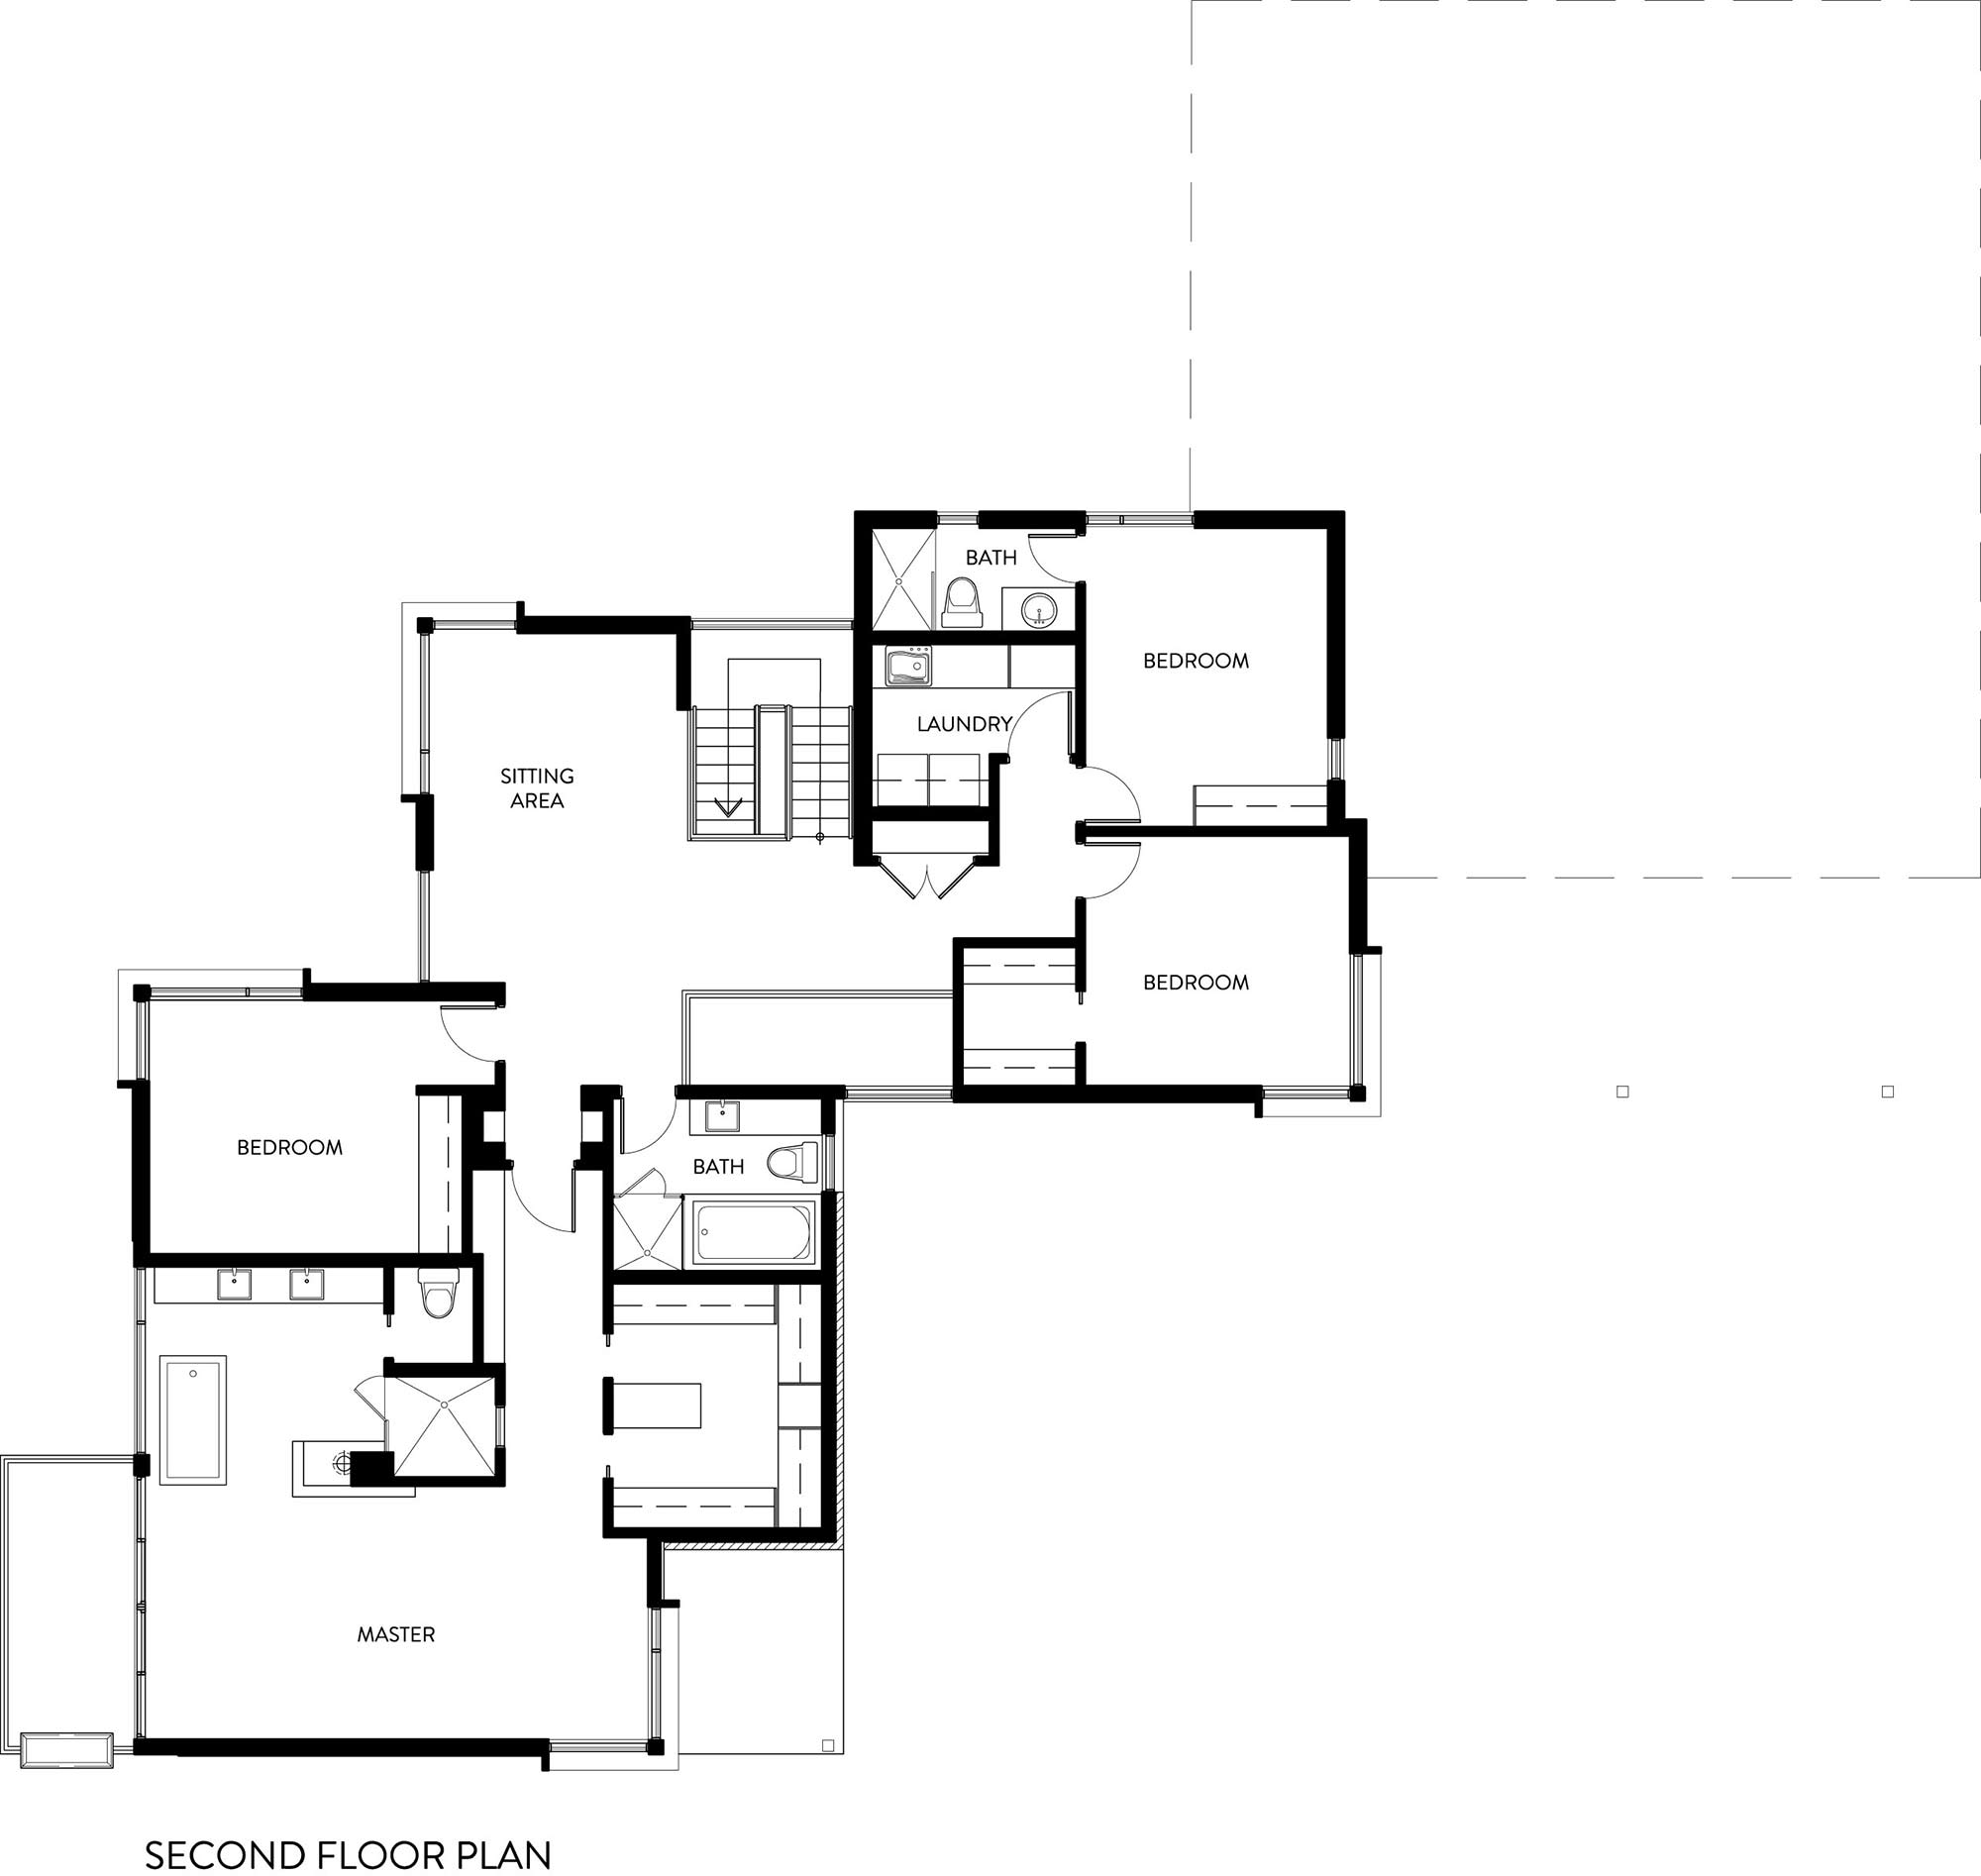 Second Floor Plan, Riverside Home in Ottawa, Canada